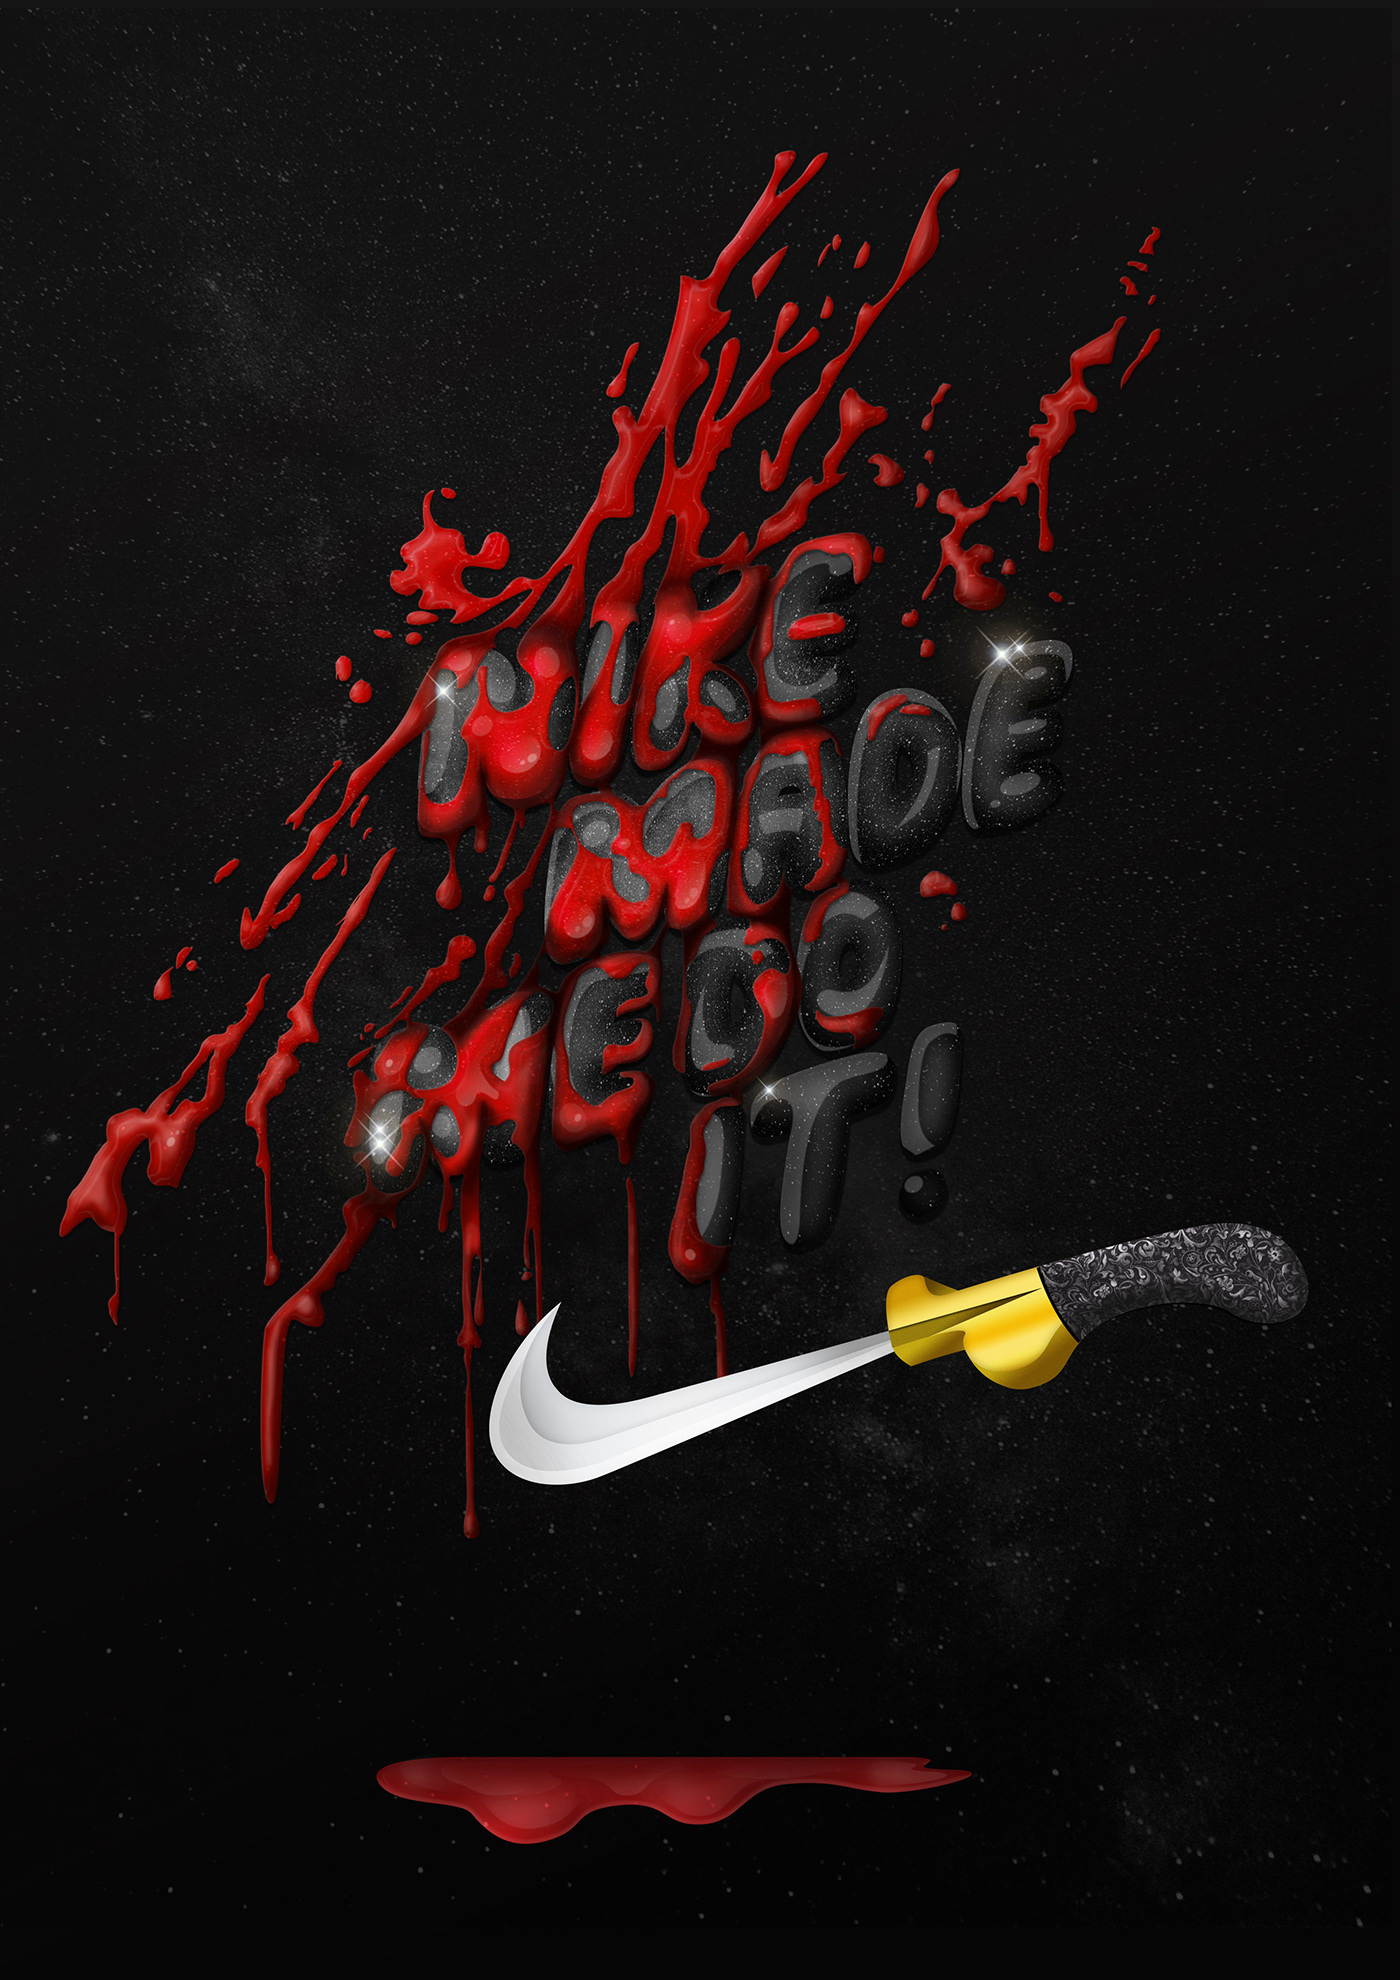 NIKE MADE ME DO IT!